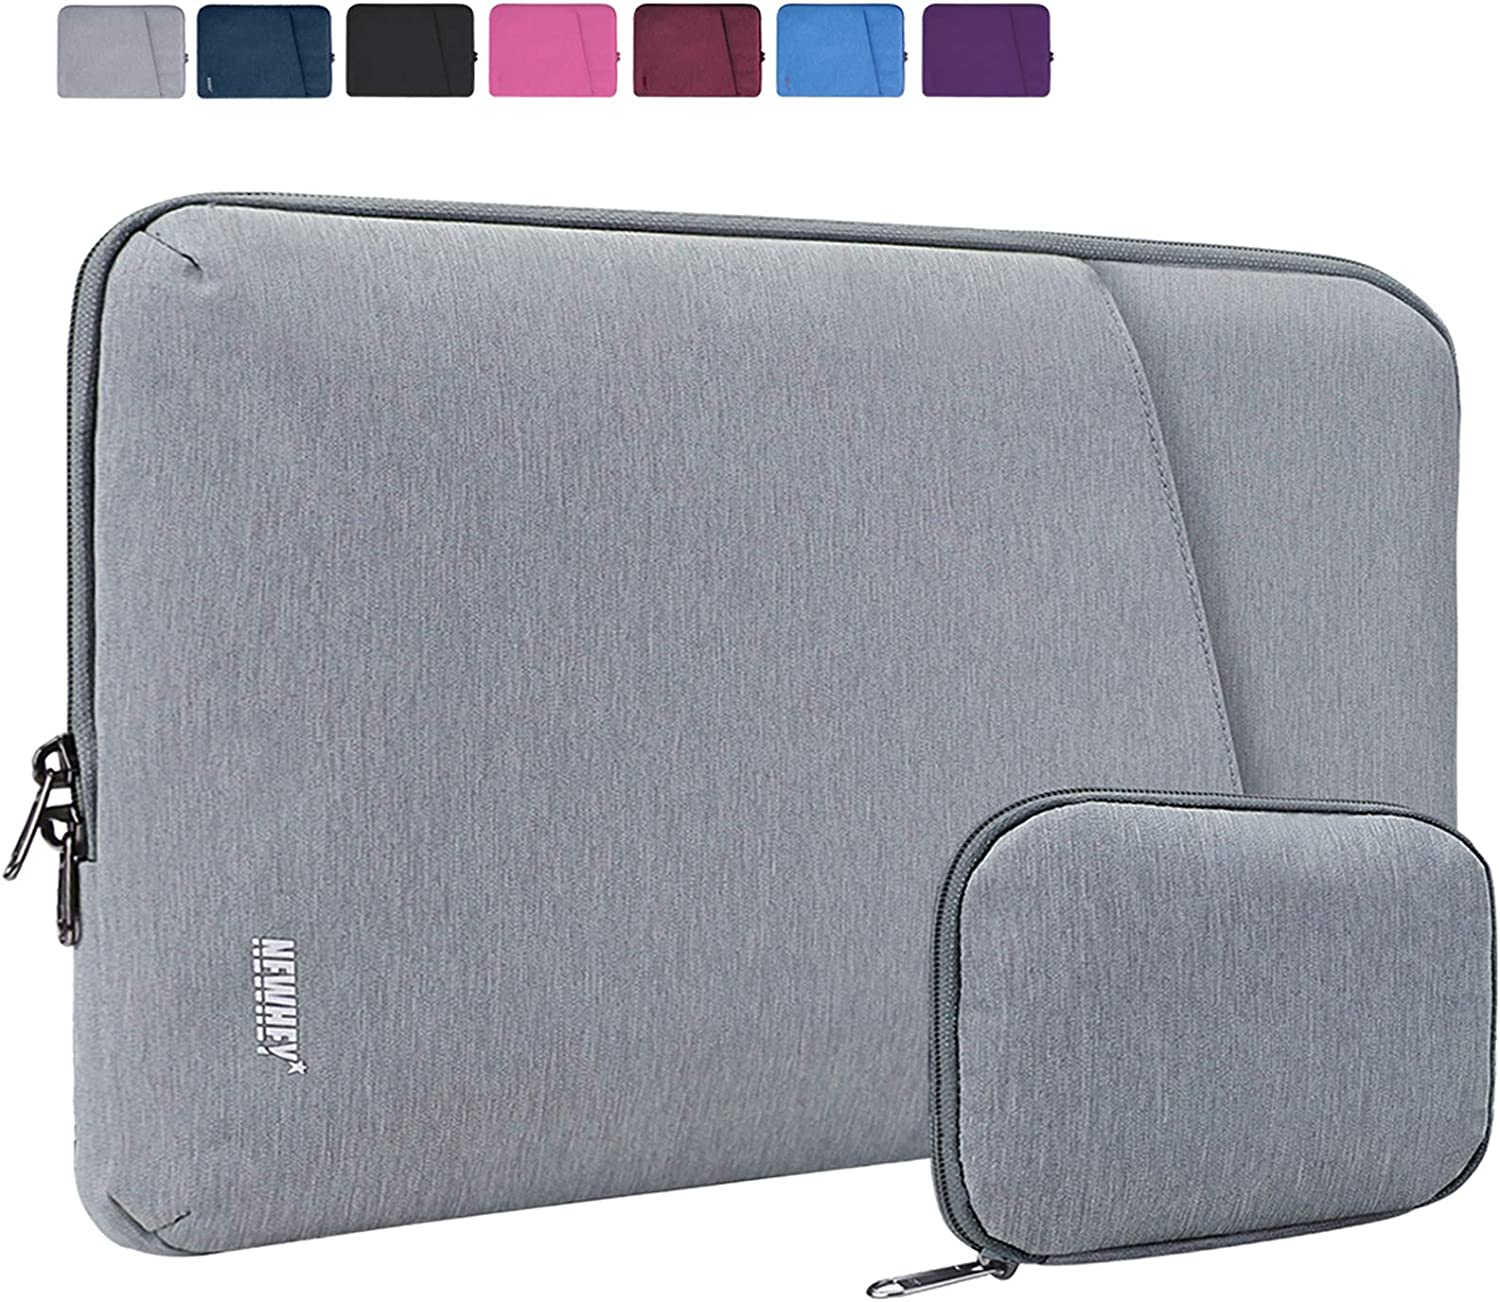 "NEWHEY Laptop Sleeve 13.3-14 Inch Computer Bag Multi-Color Choices Case, Water-Resistant Notebook Pocket Tablet Briefcase Carrying Bag with A Case,Compatible with 13""MacBook Pro and MacBook Air,Gray"